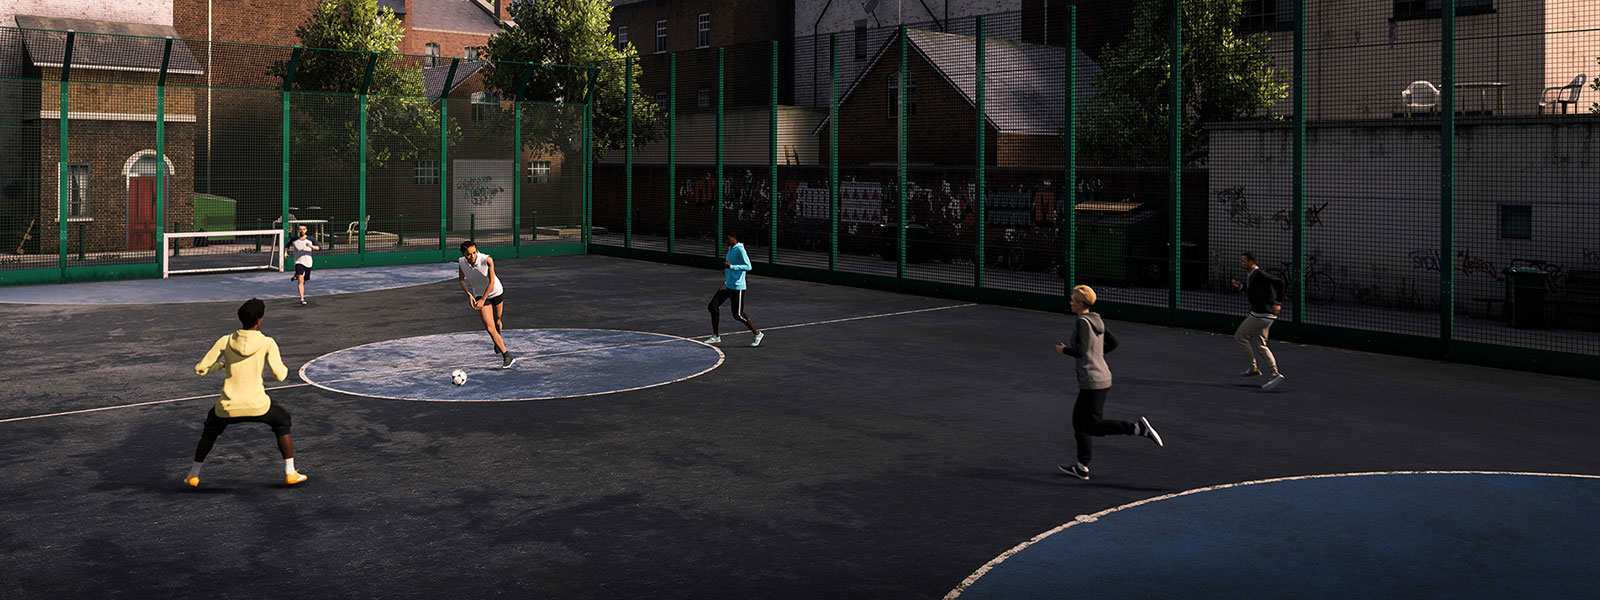 Six people playing street football in a neighbourhood cage